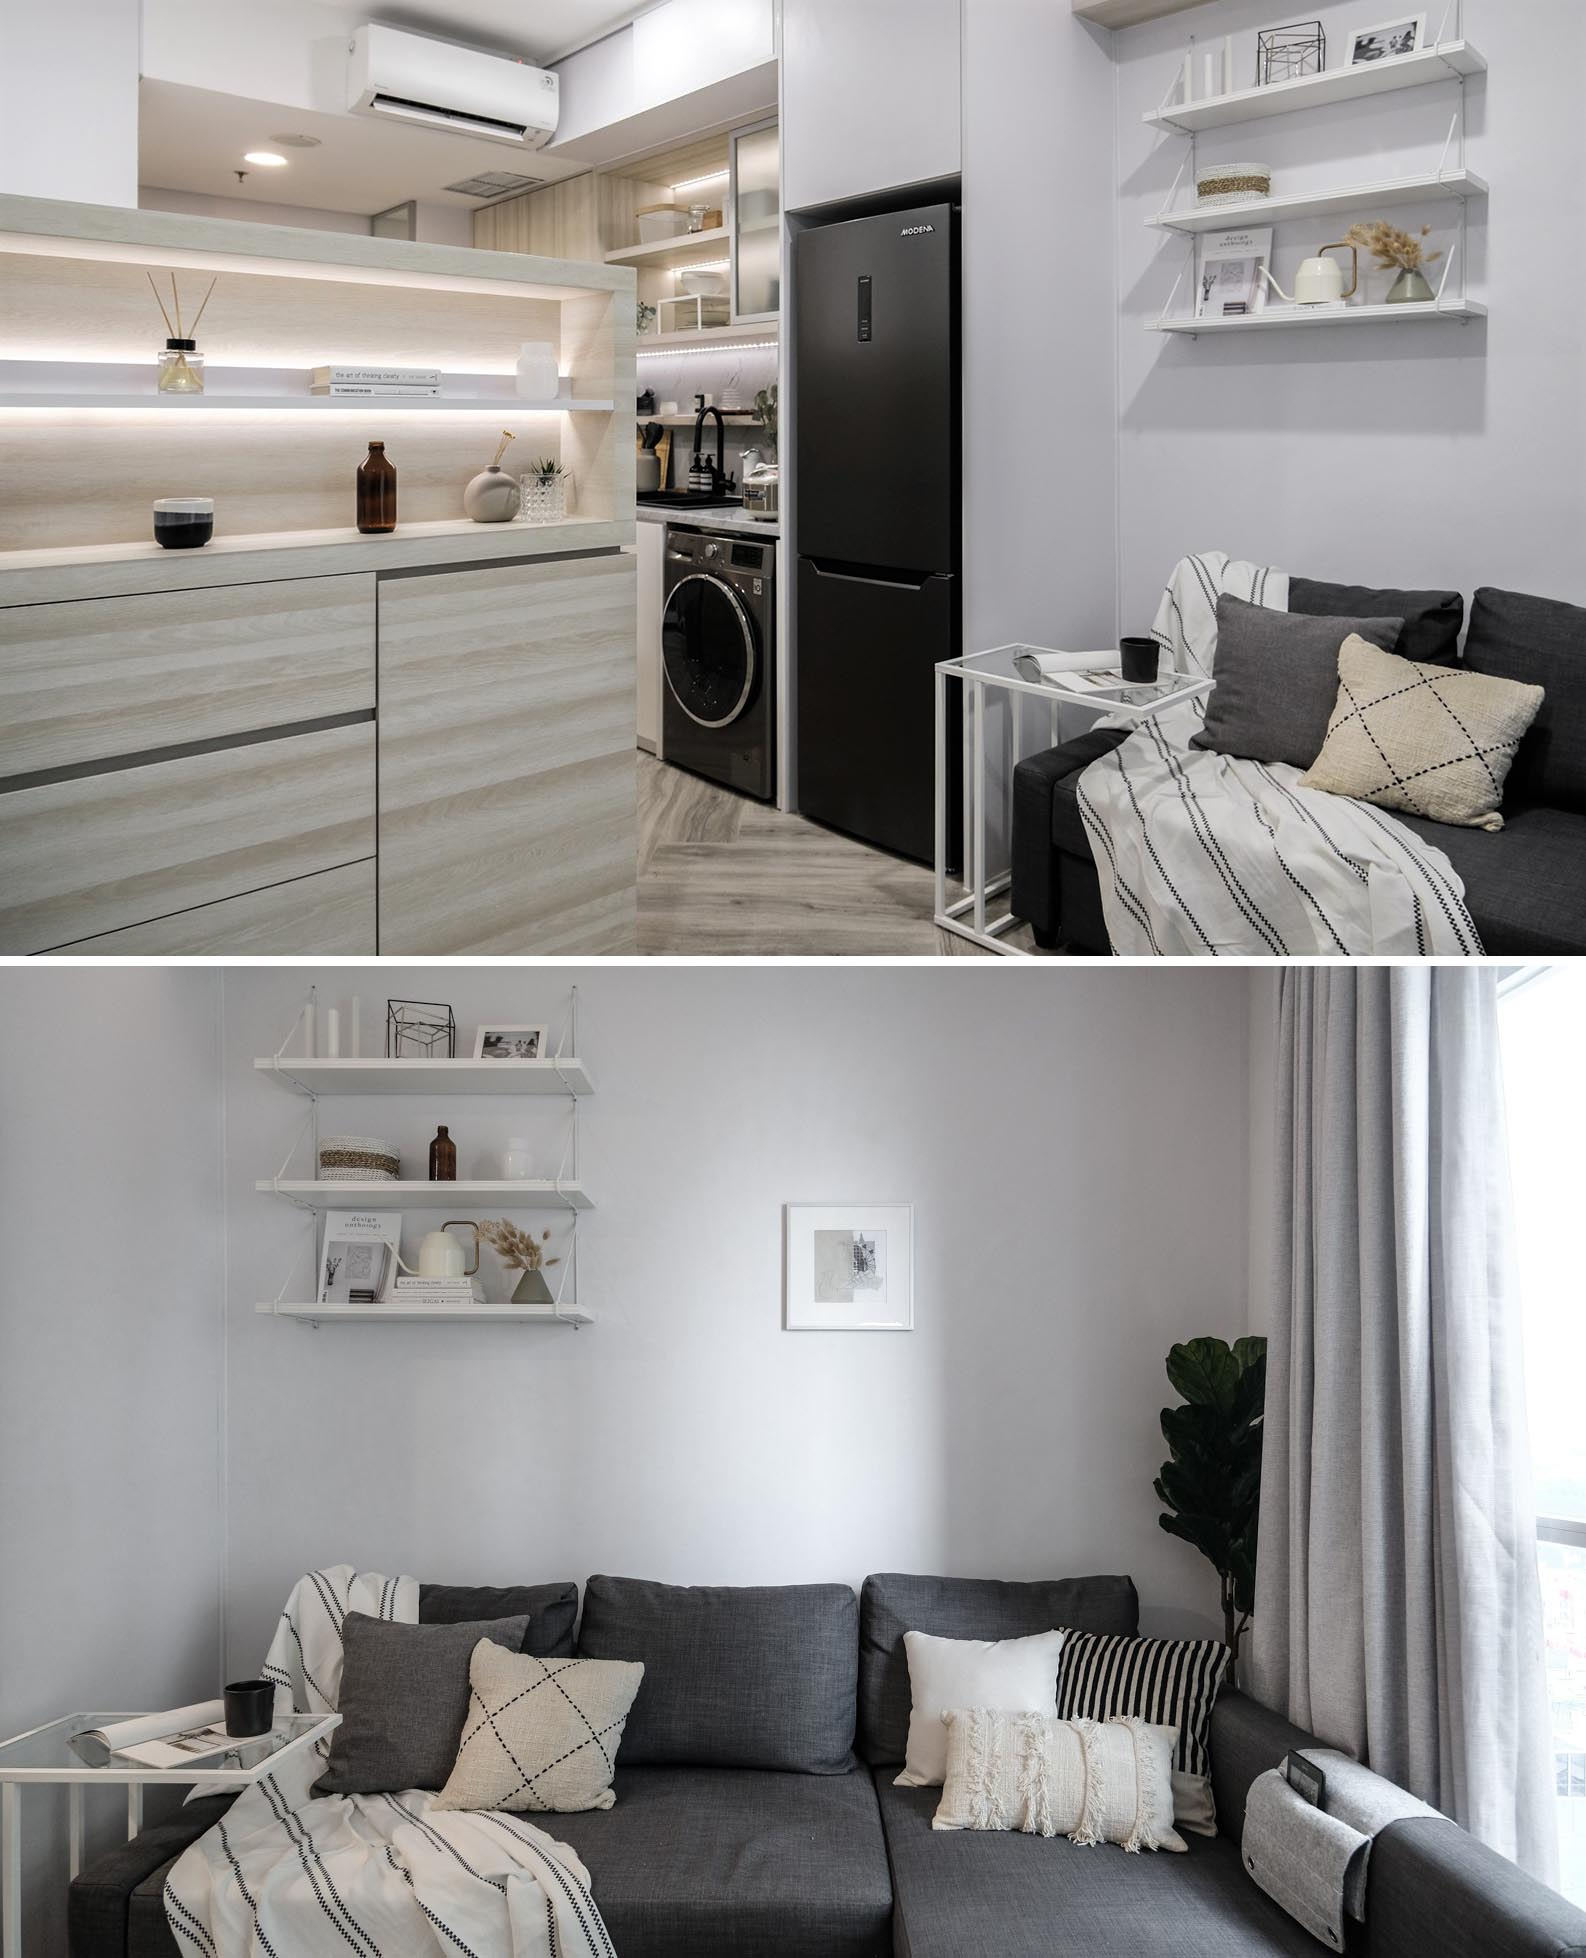 A Loft Bed With Storage Underneath Makes This Small Micro Apartment More Liveable 7